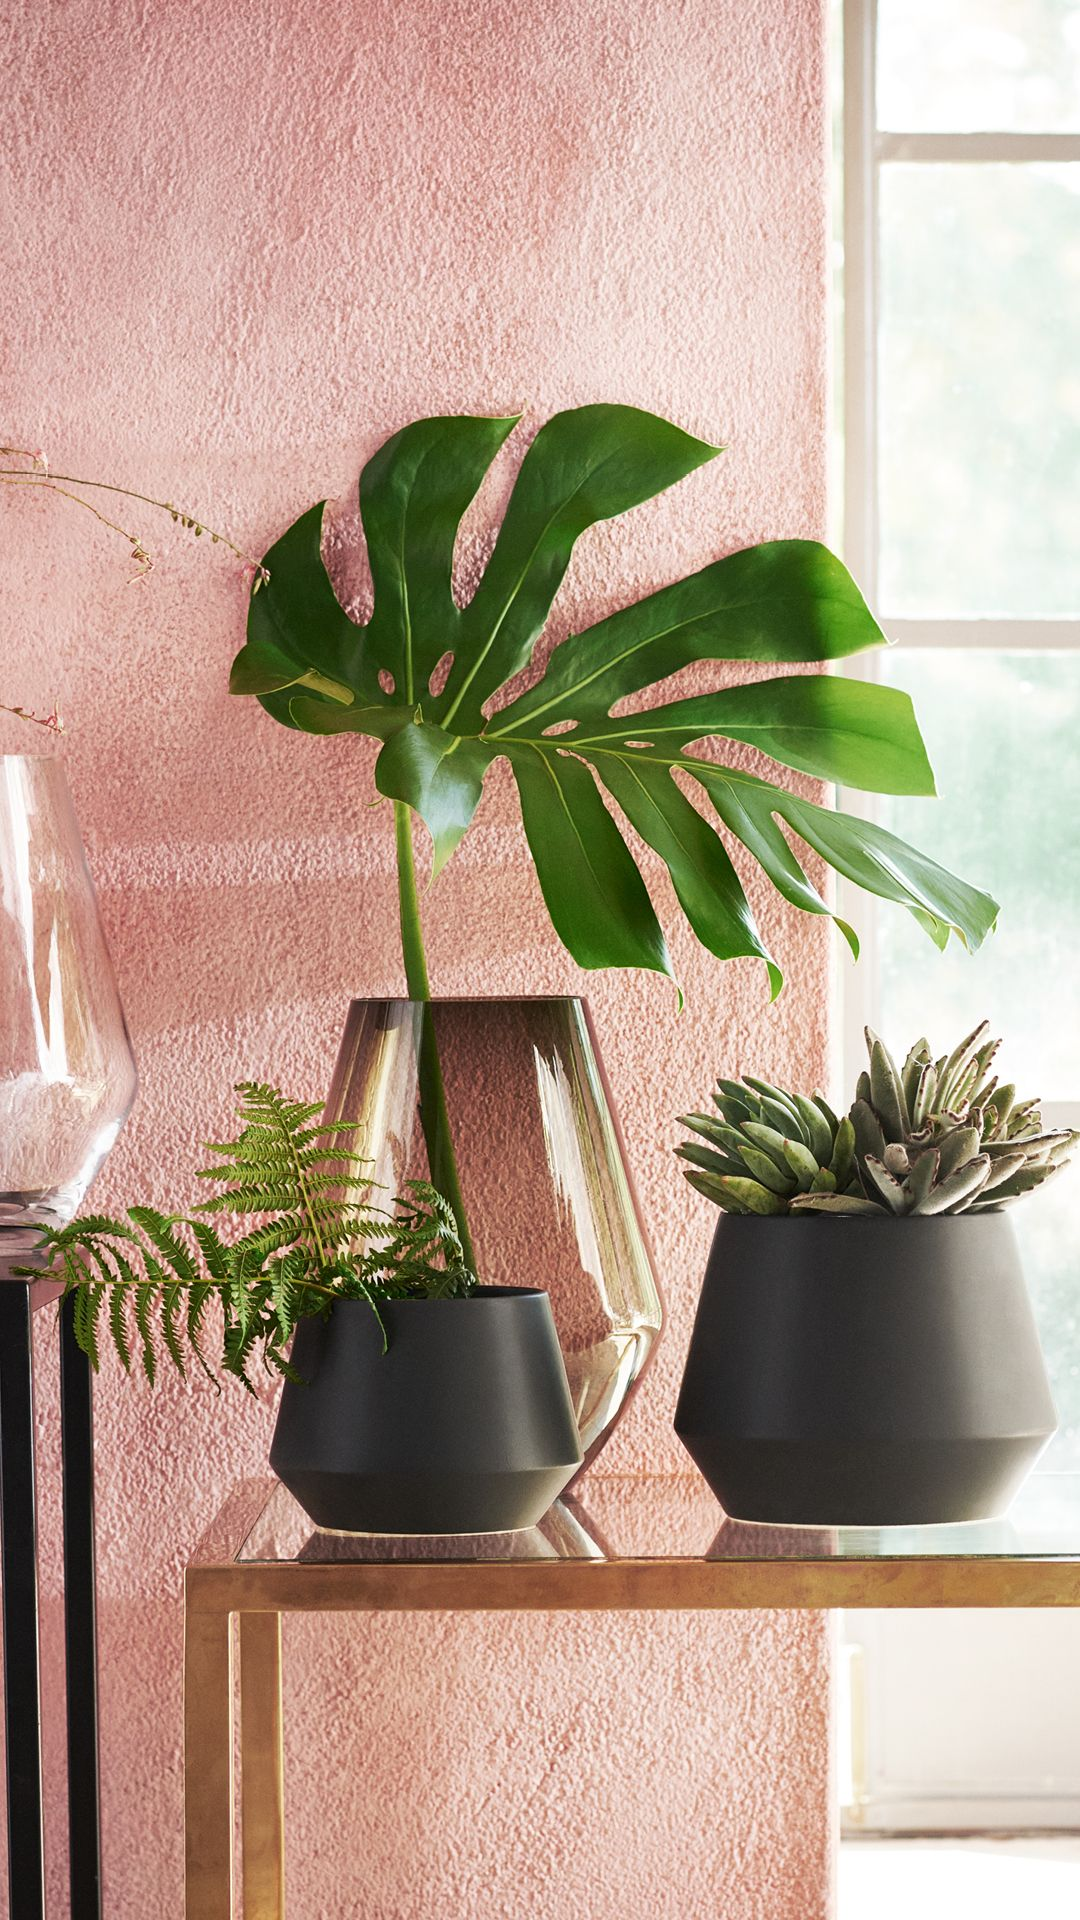 Bring Nature Inside With Our Beautiful Selection Of Pots And Vases